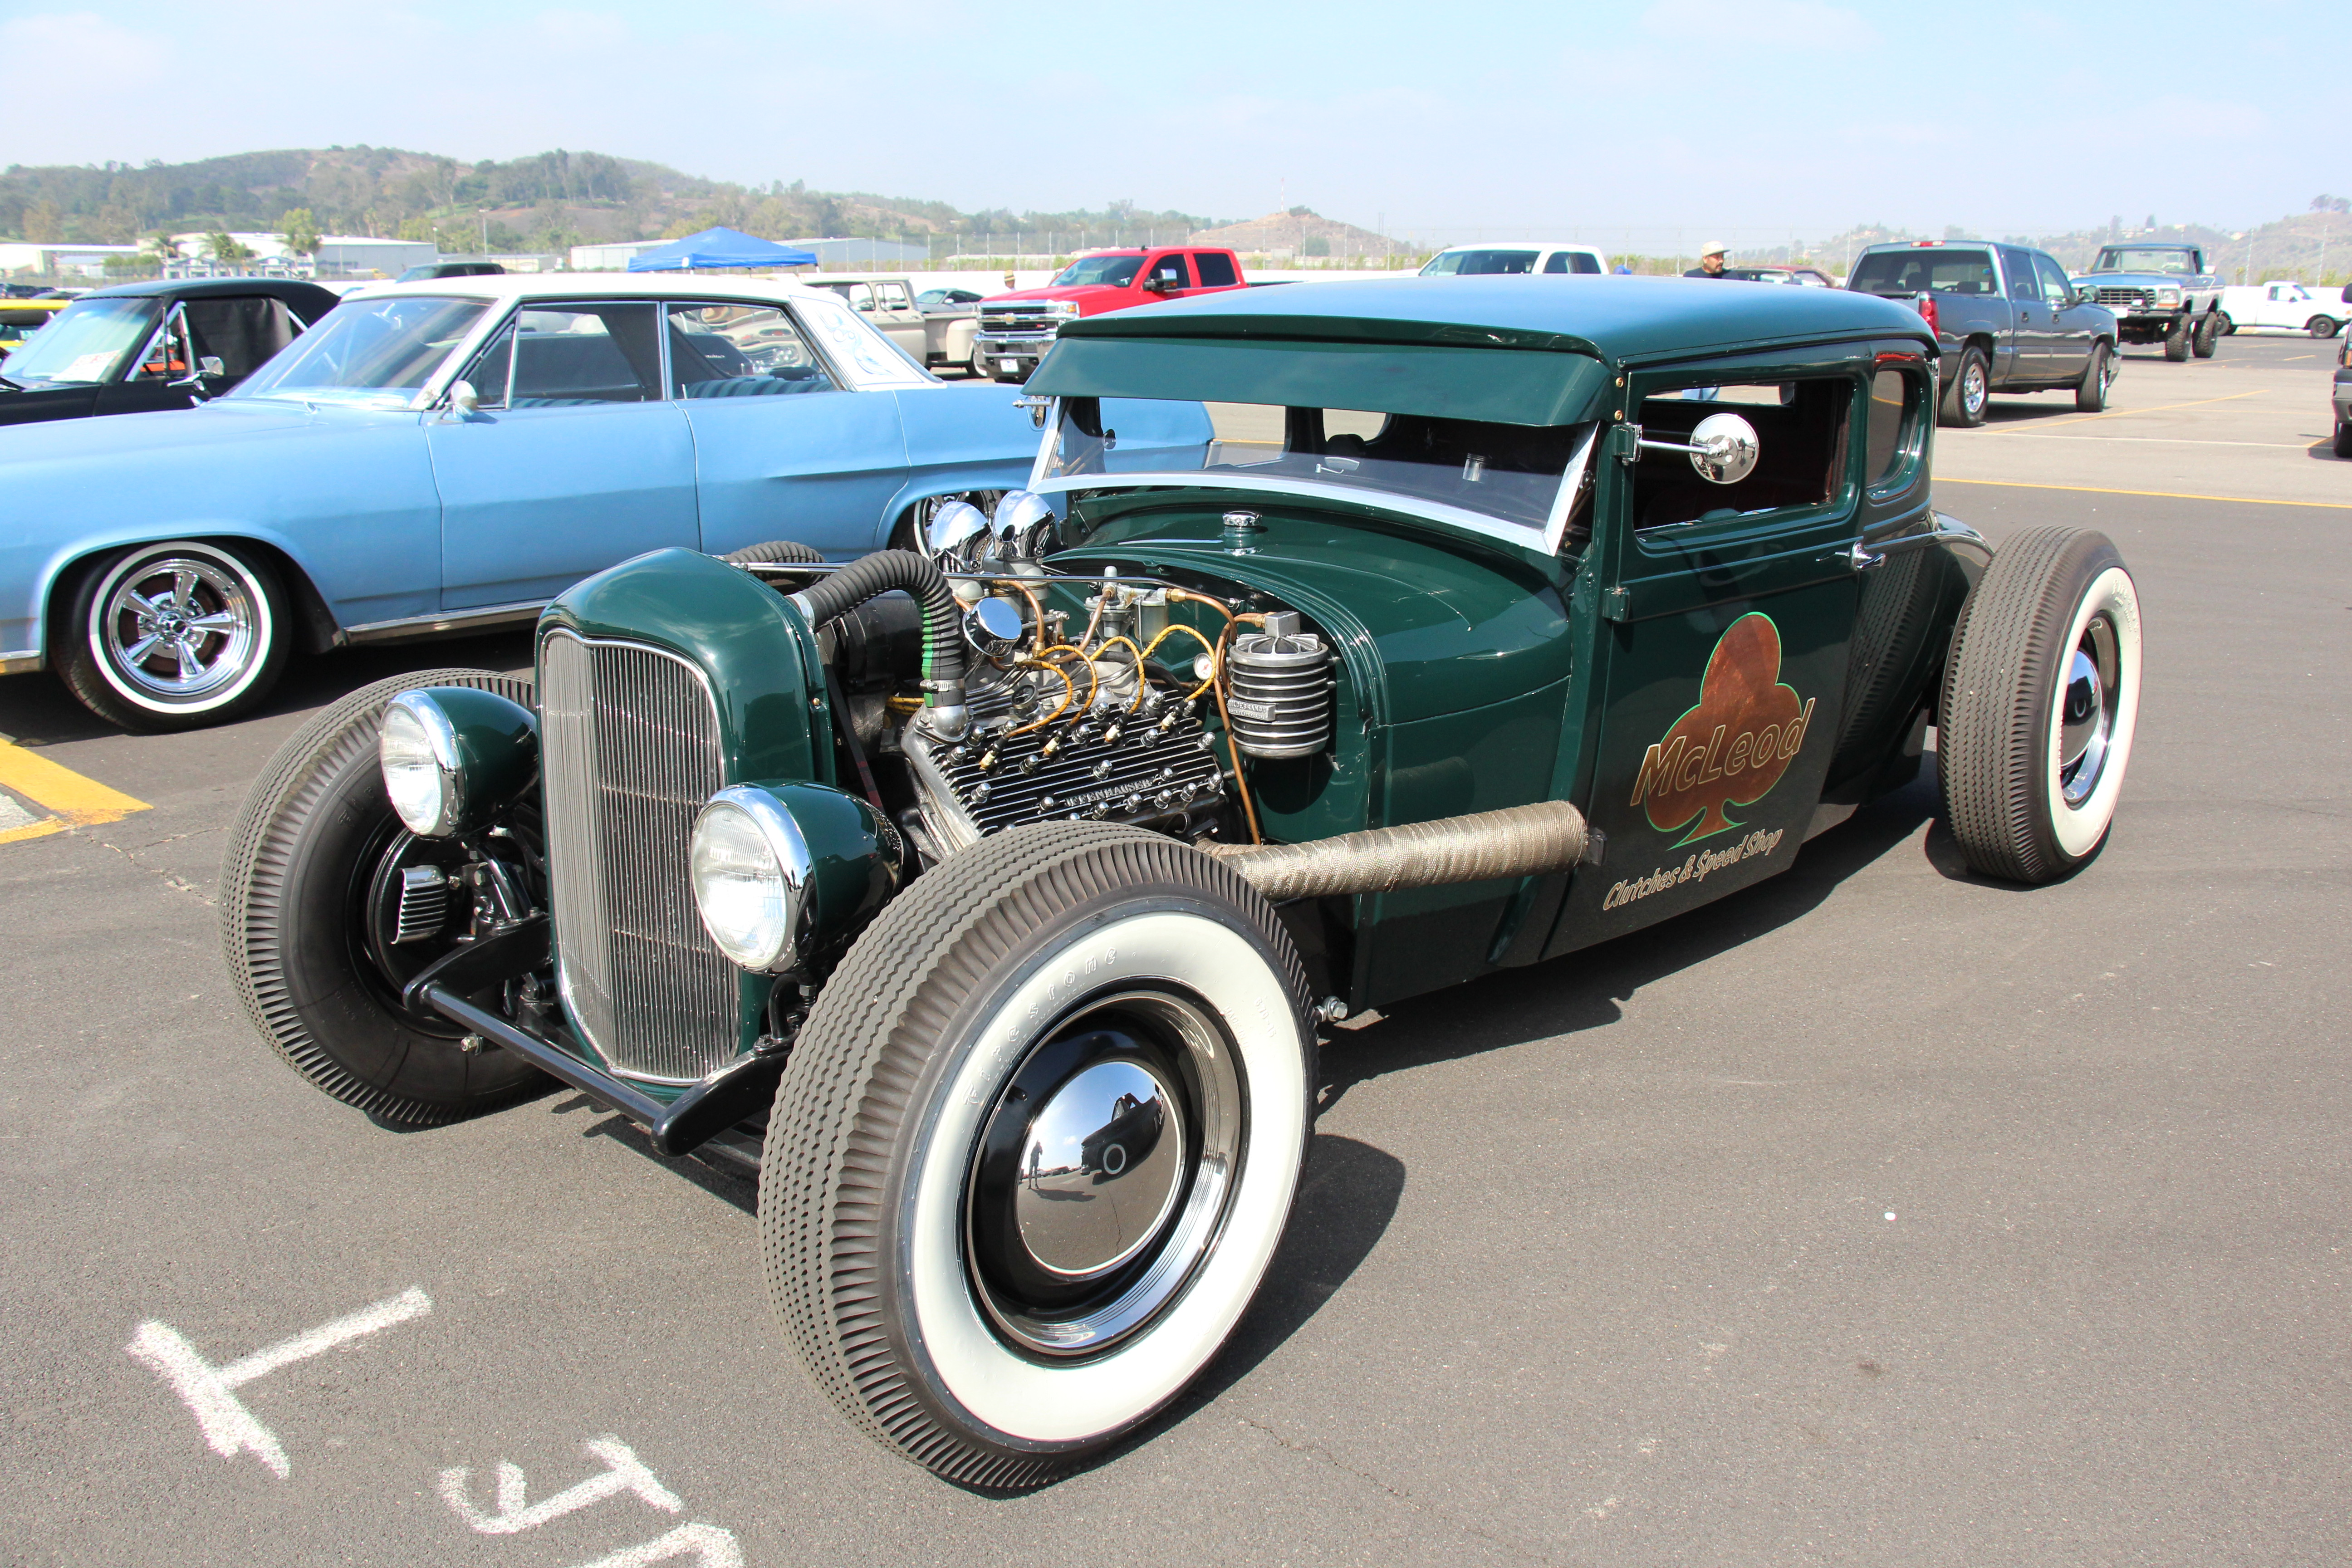 File:1930 Ford Model A Coupe Hot Rod (20755392089).jpg - Wikimedia ...